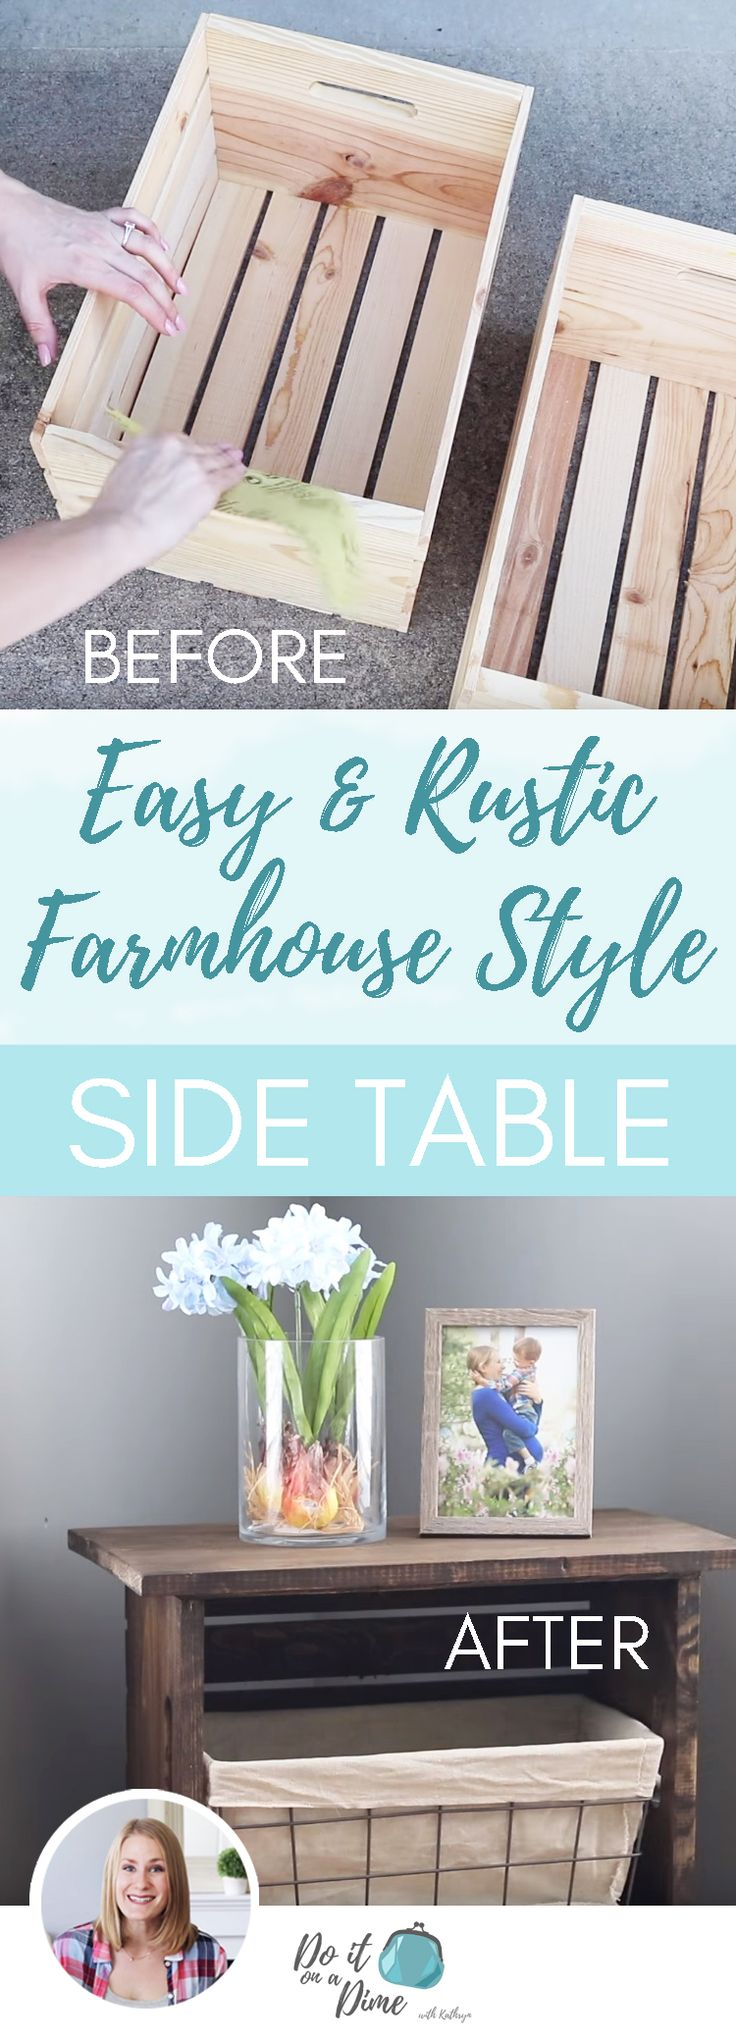 Making Furniture with No Tools! | DIY Rustic Farmhouse Side Table